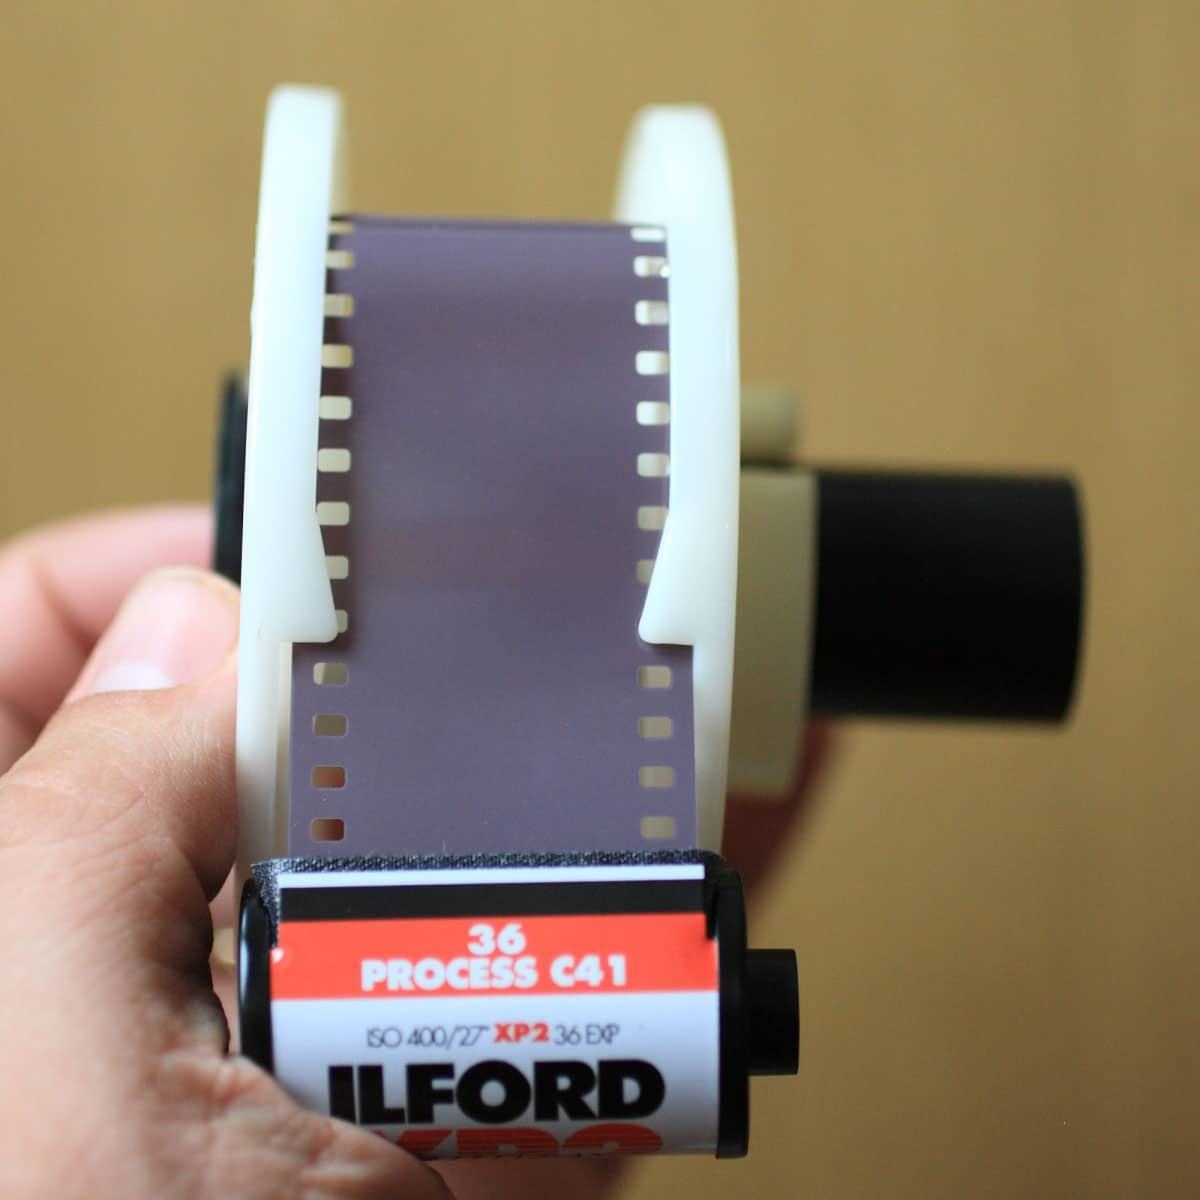 Loading a Paterson tank - Start loading the film